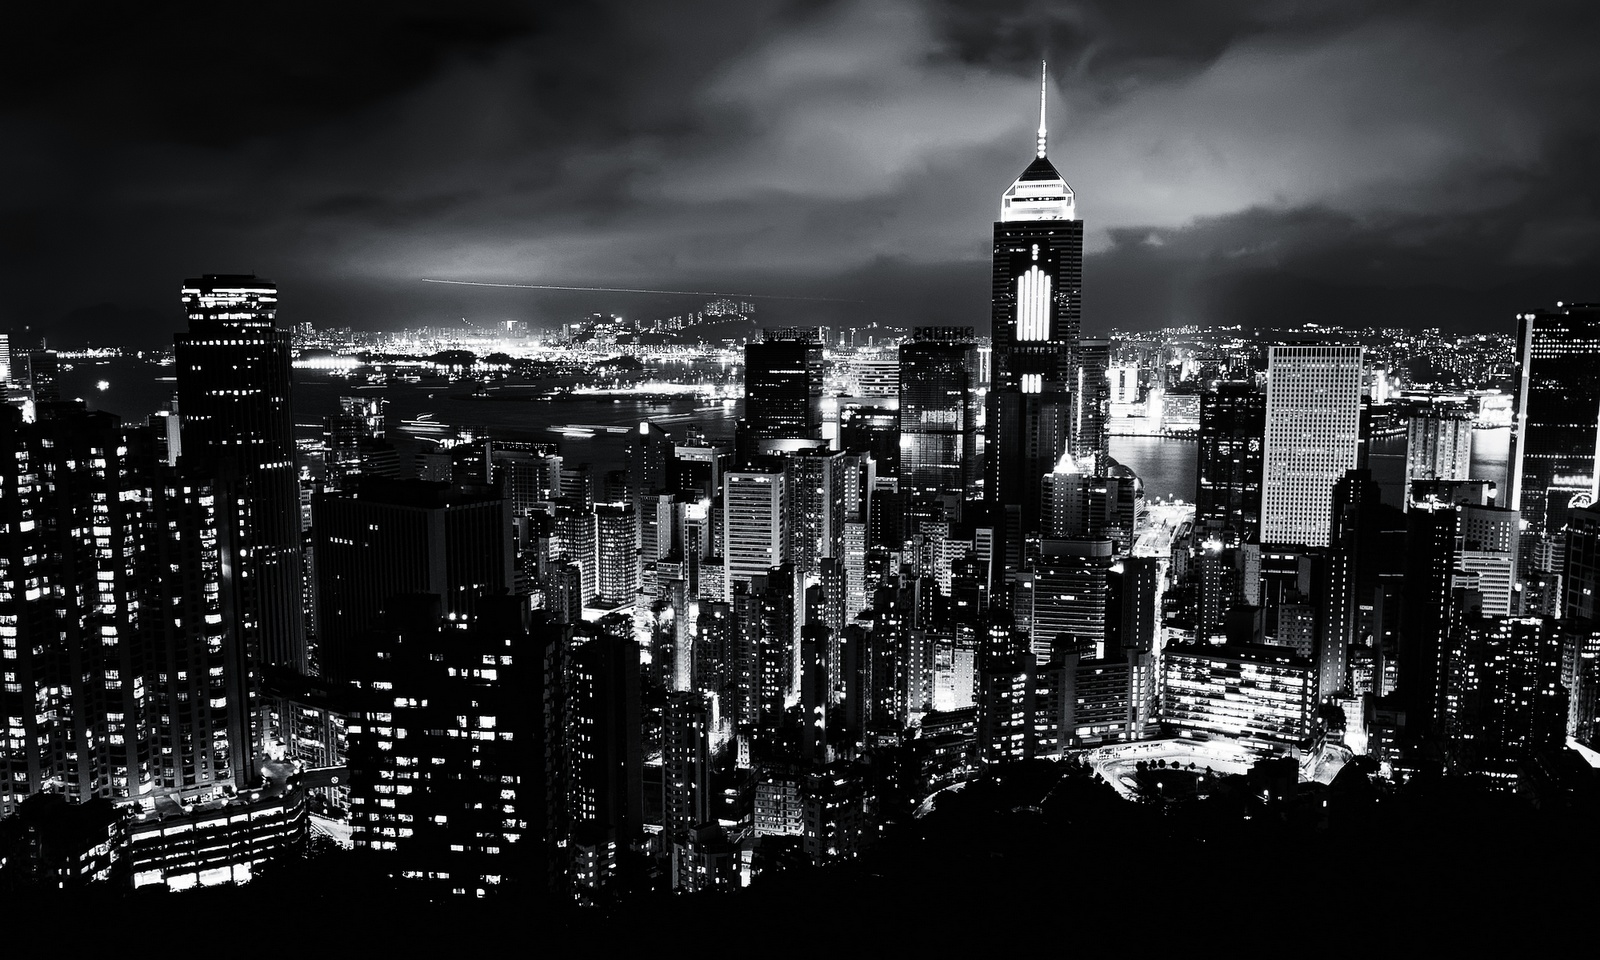 Black And White City Wallpaper - WallpaperSafari